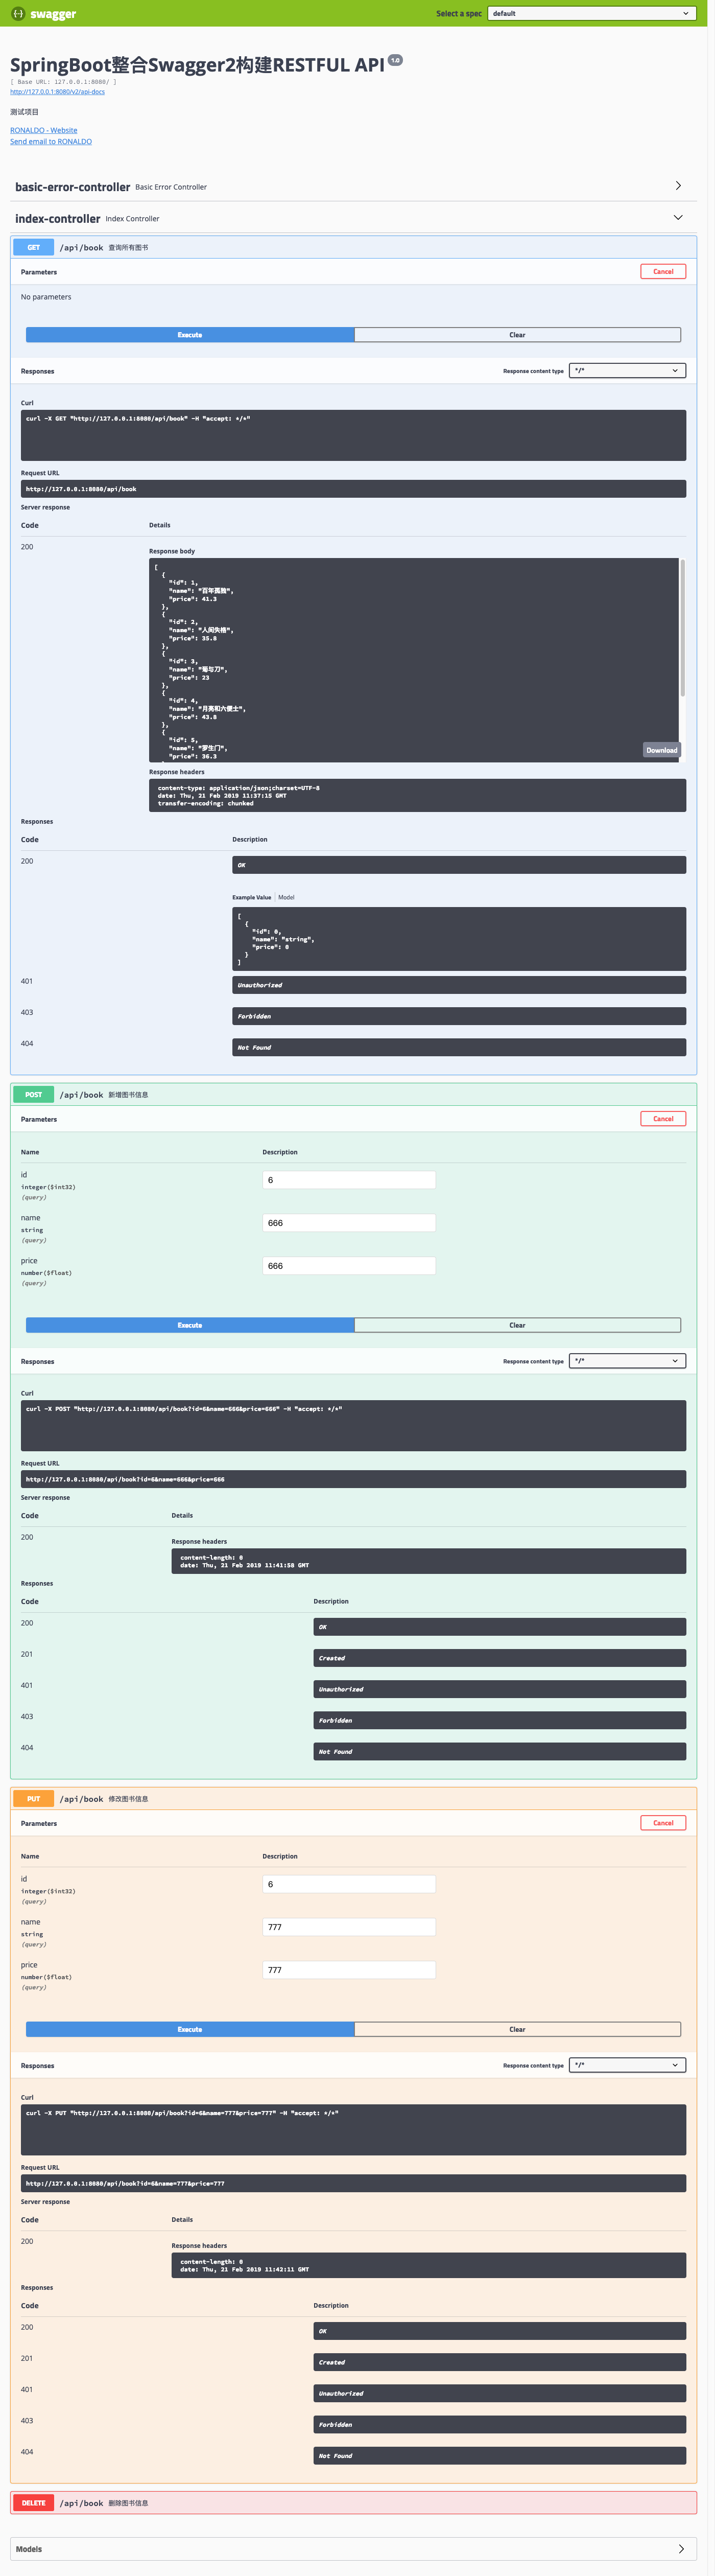 127.0.0.1_8080_swagger-ui.html (1).png